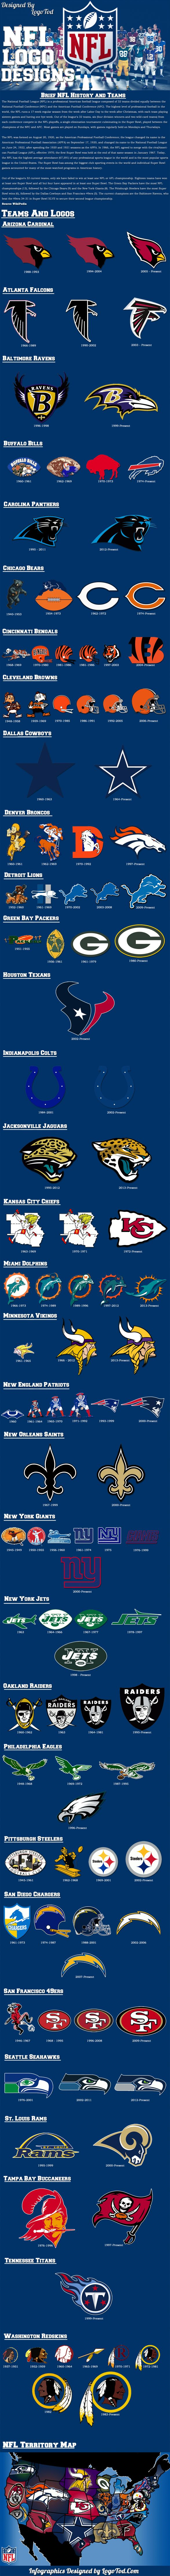 An interesting look at the evolution of NFL team logos over the years...